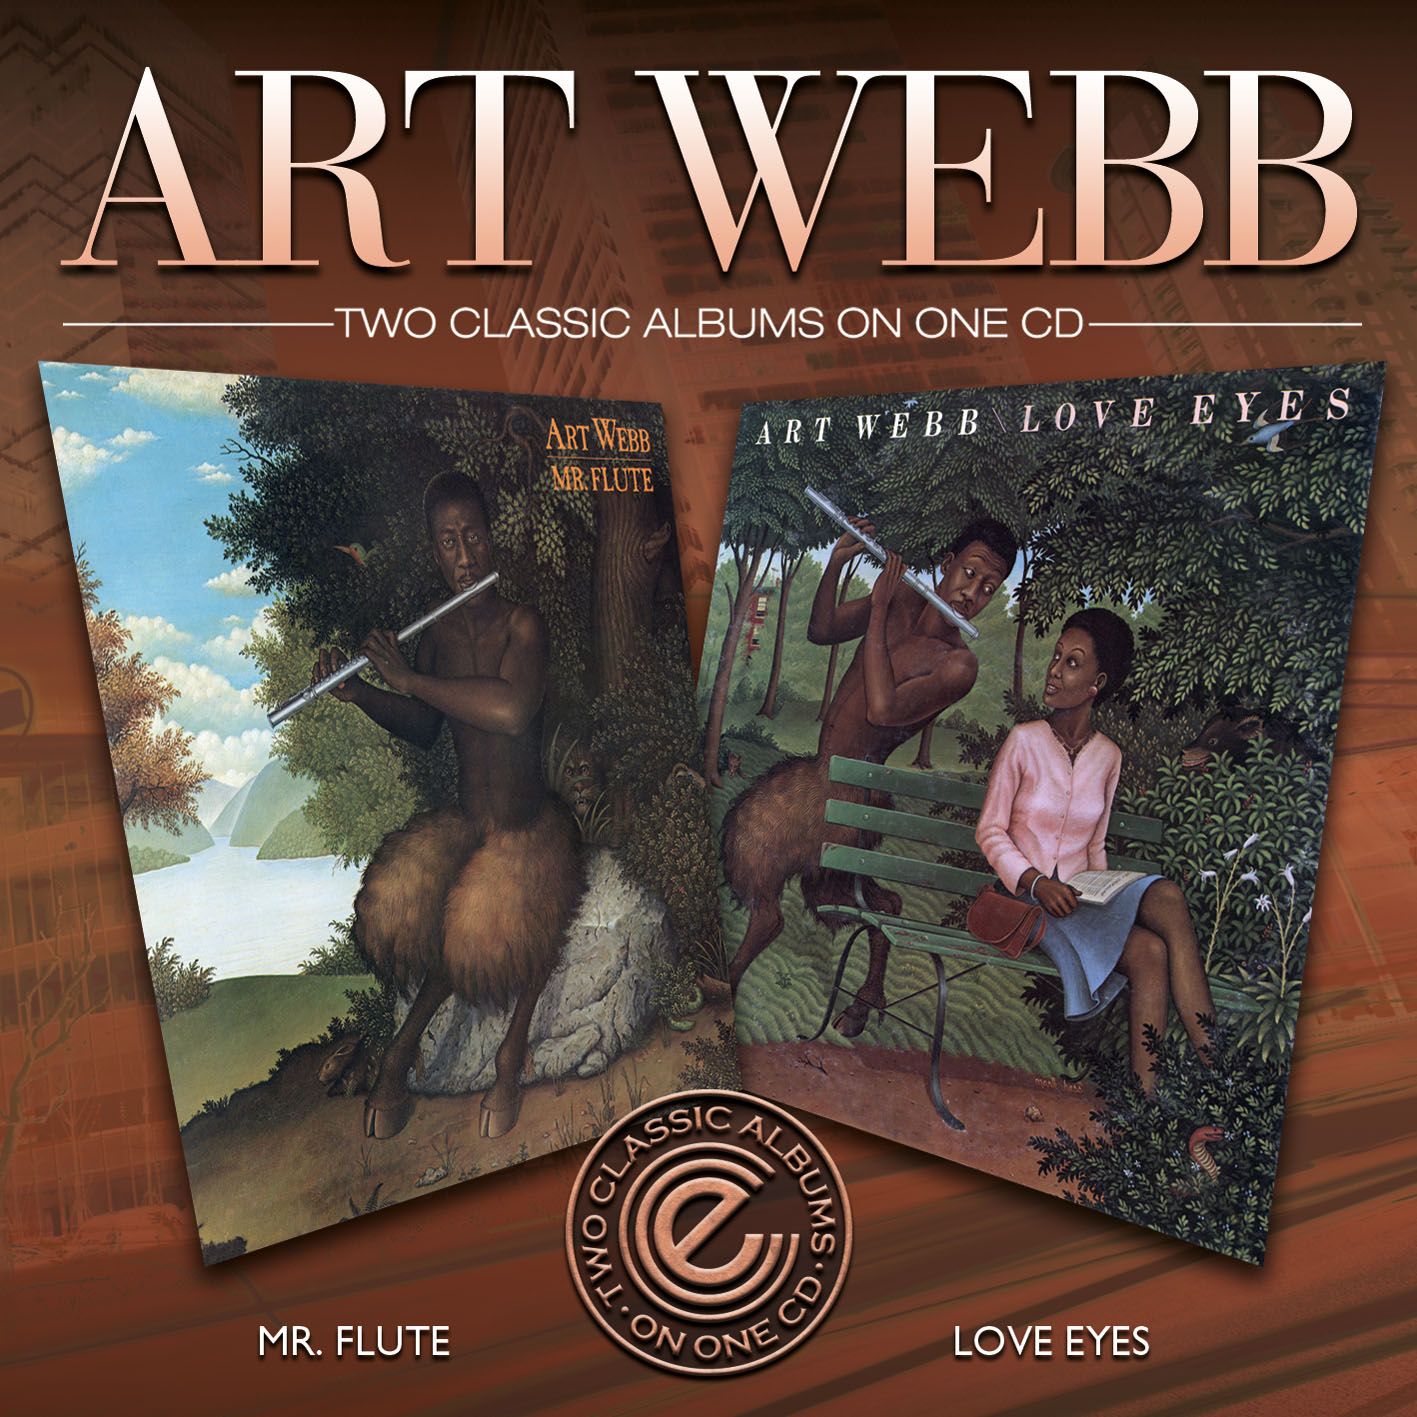 Art Webb/MR FLUTE & LOVE EYES CD